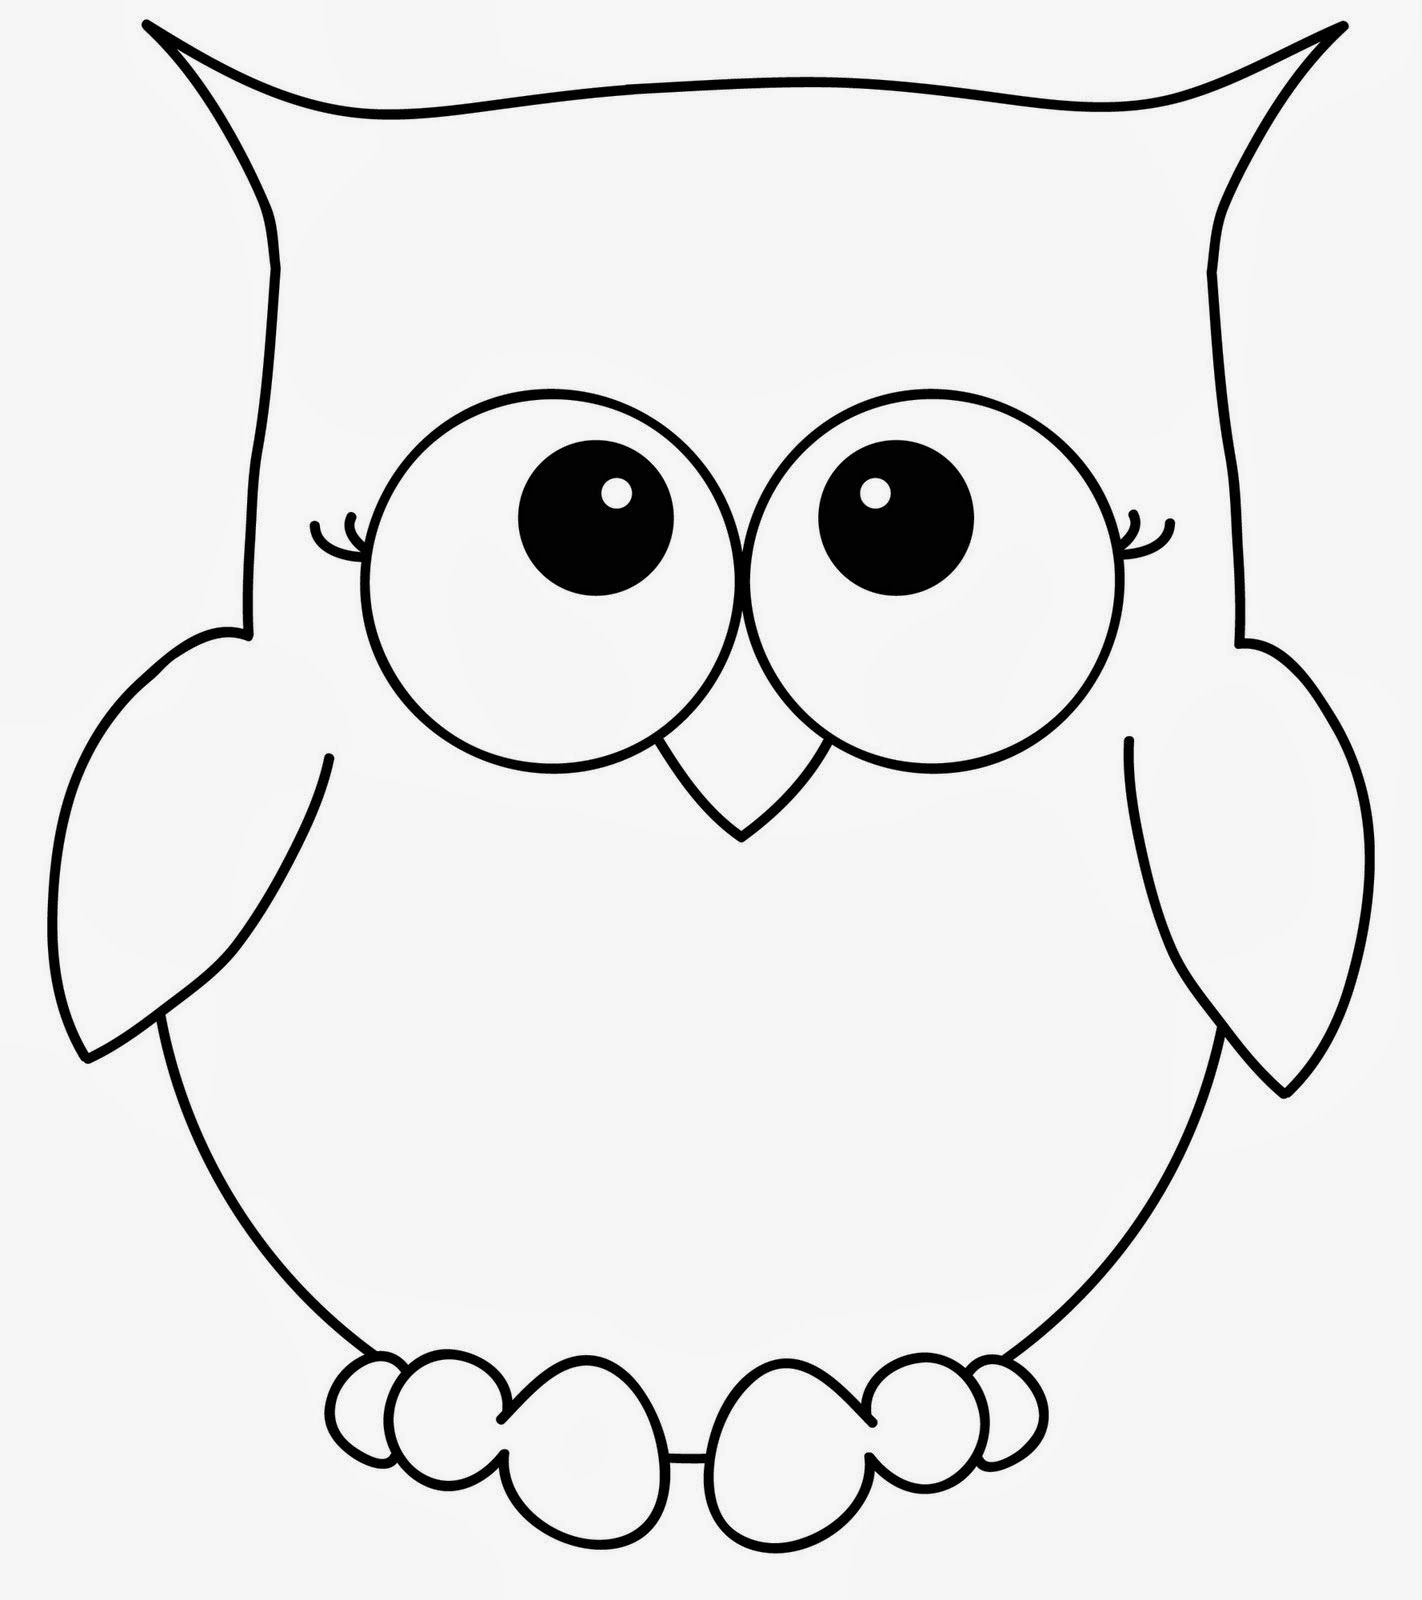 Selimut Ku Cute Lil39 Owl Coloring Pages Flamingo Under The Sea Of